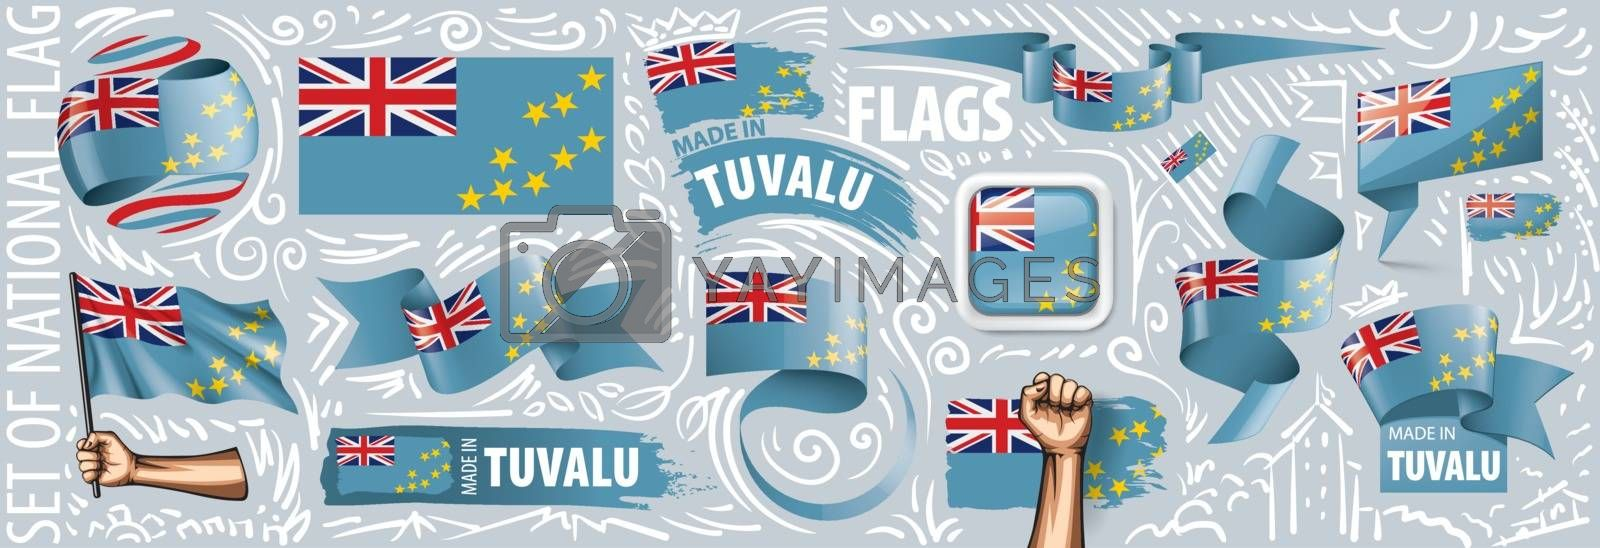 Vector set of the national flag of Tuvalu in various creative designs.